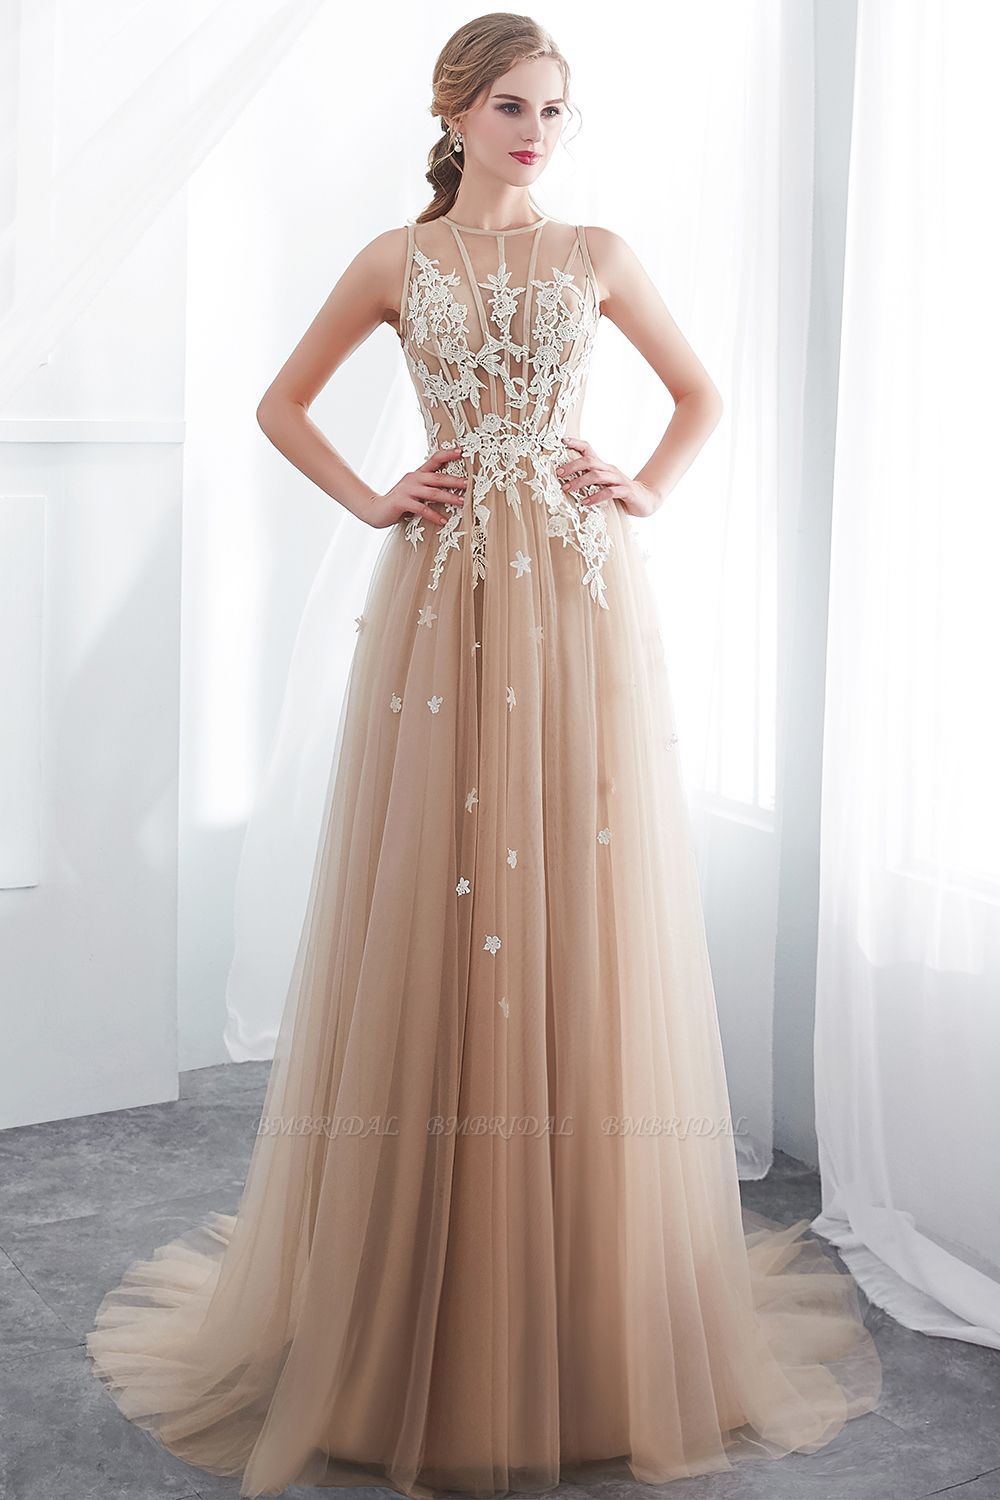 Elegant Sleeveless Tulle Prom Dress Long Evening Gowns With Appliques